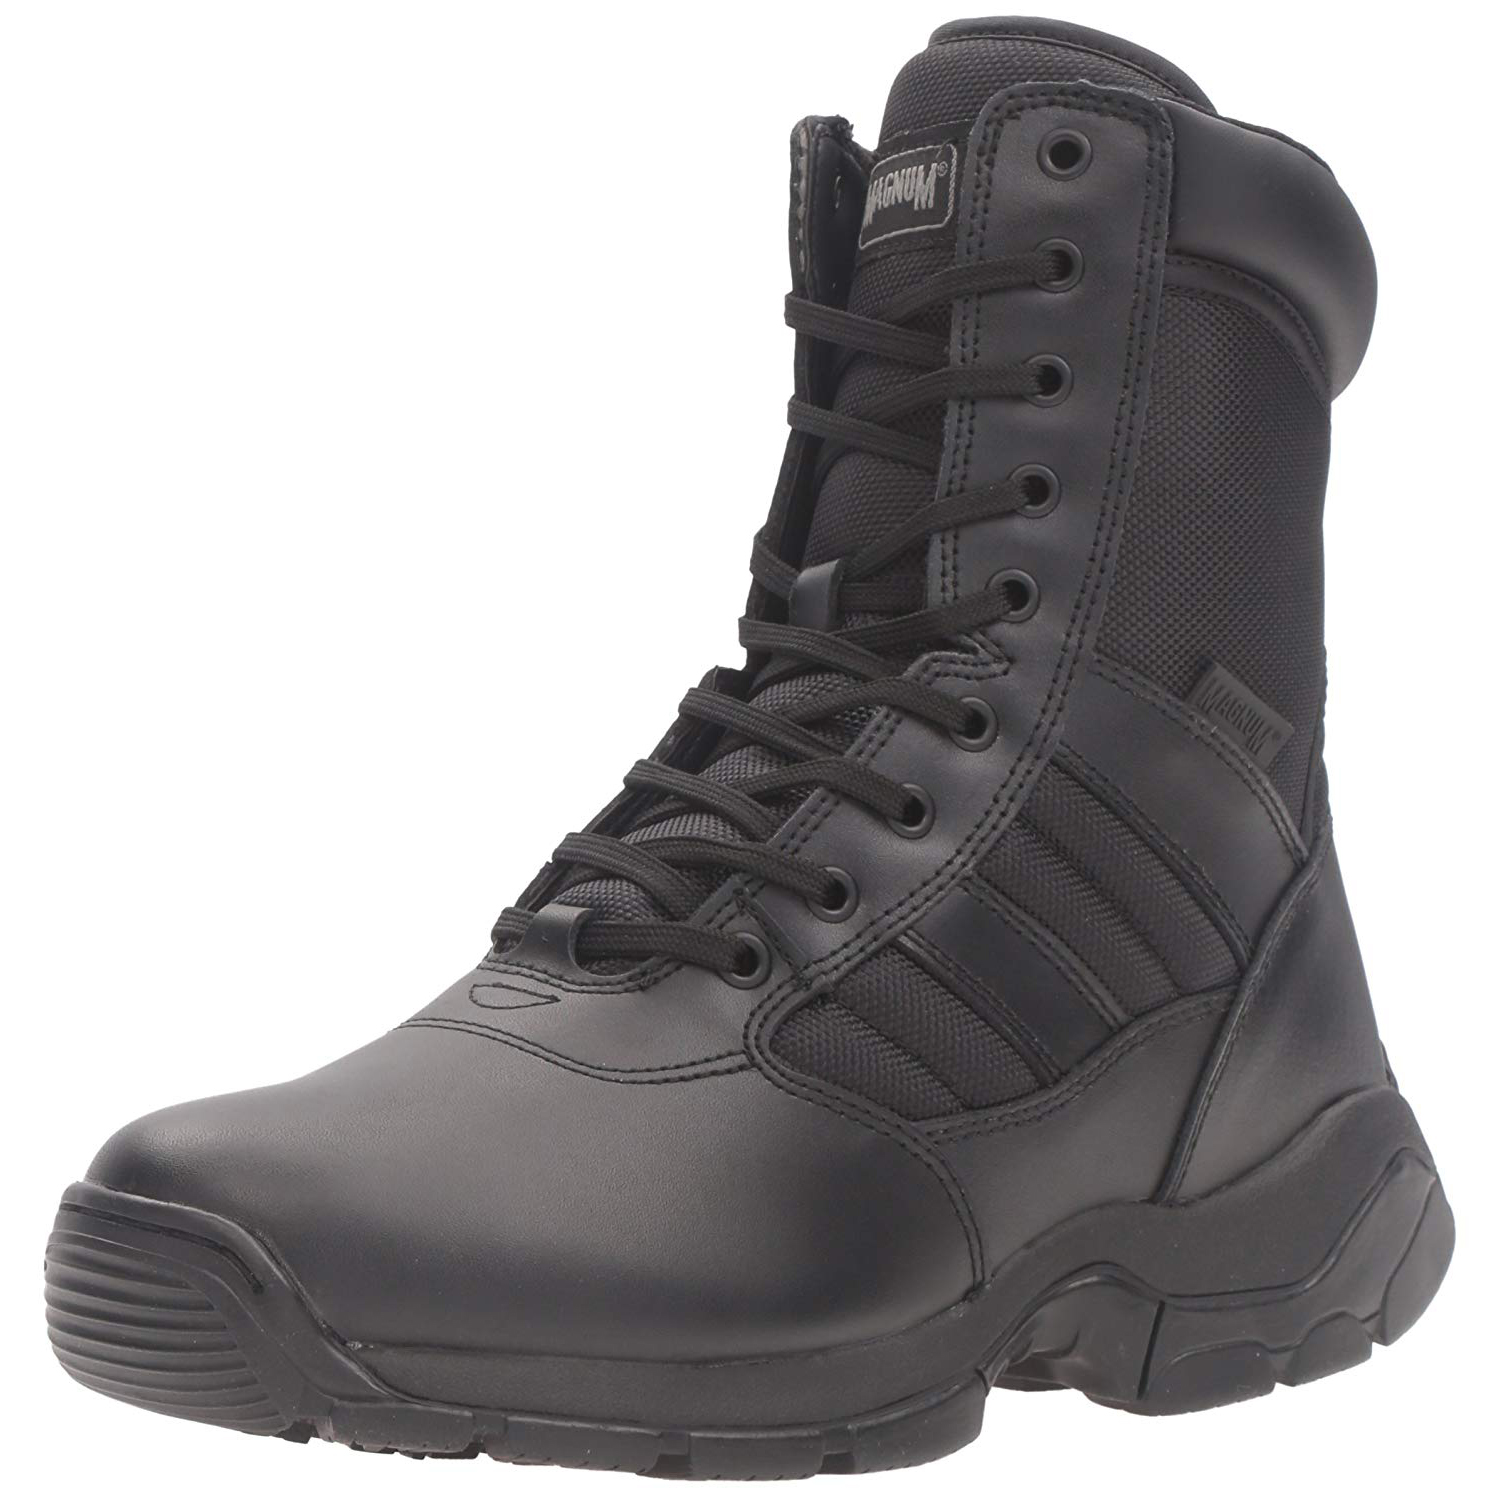 faf42f6e712 Details about Magnum Tactical/Work Panther 8.0 Size Zip Leather & Nylon  Boots - 7127